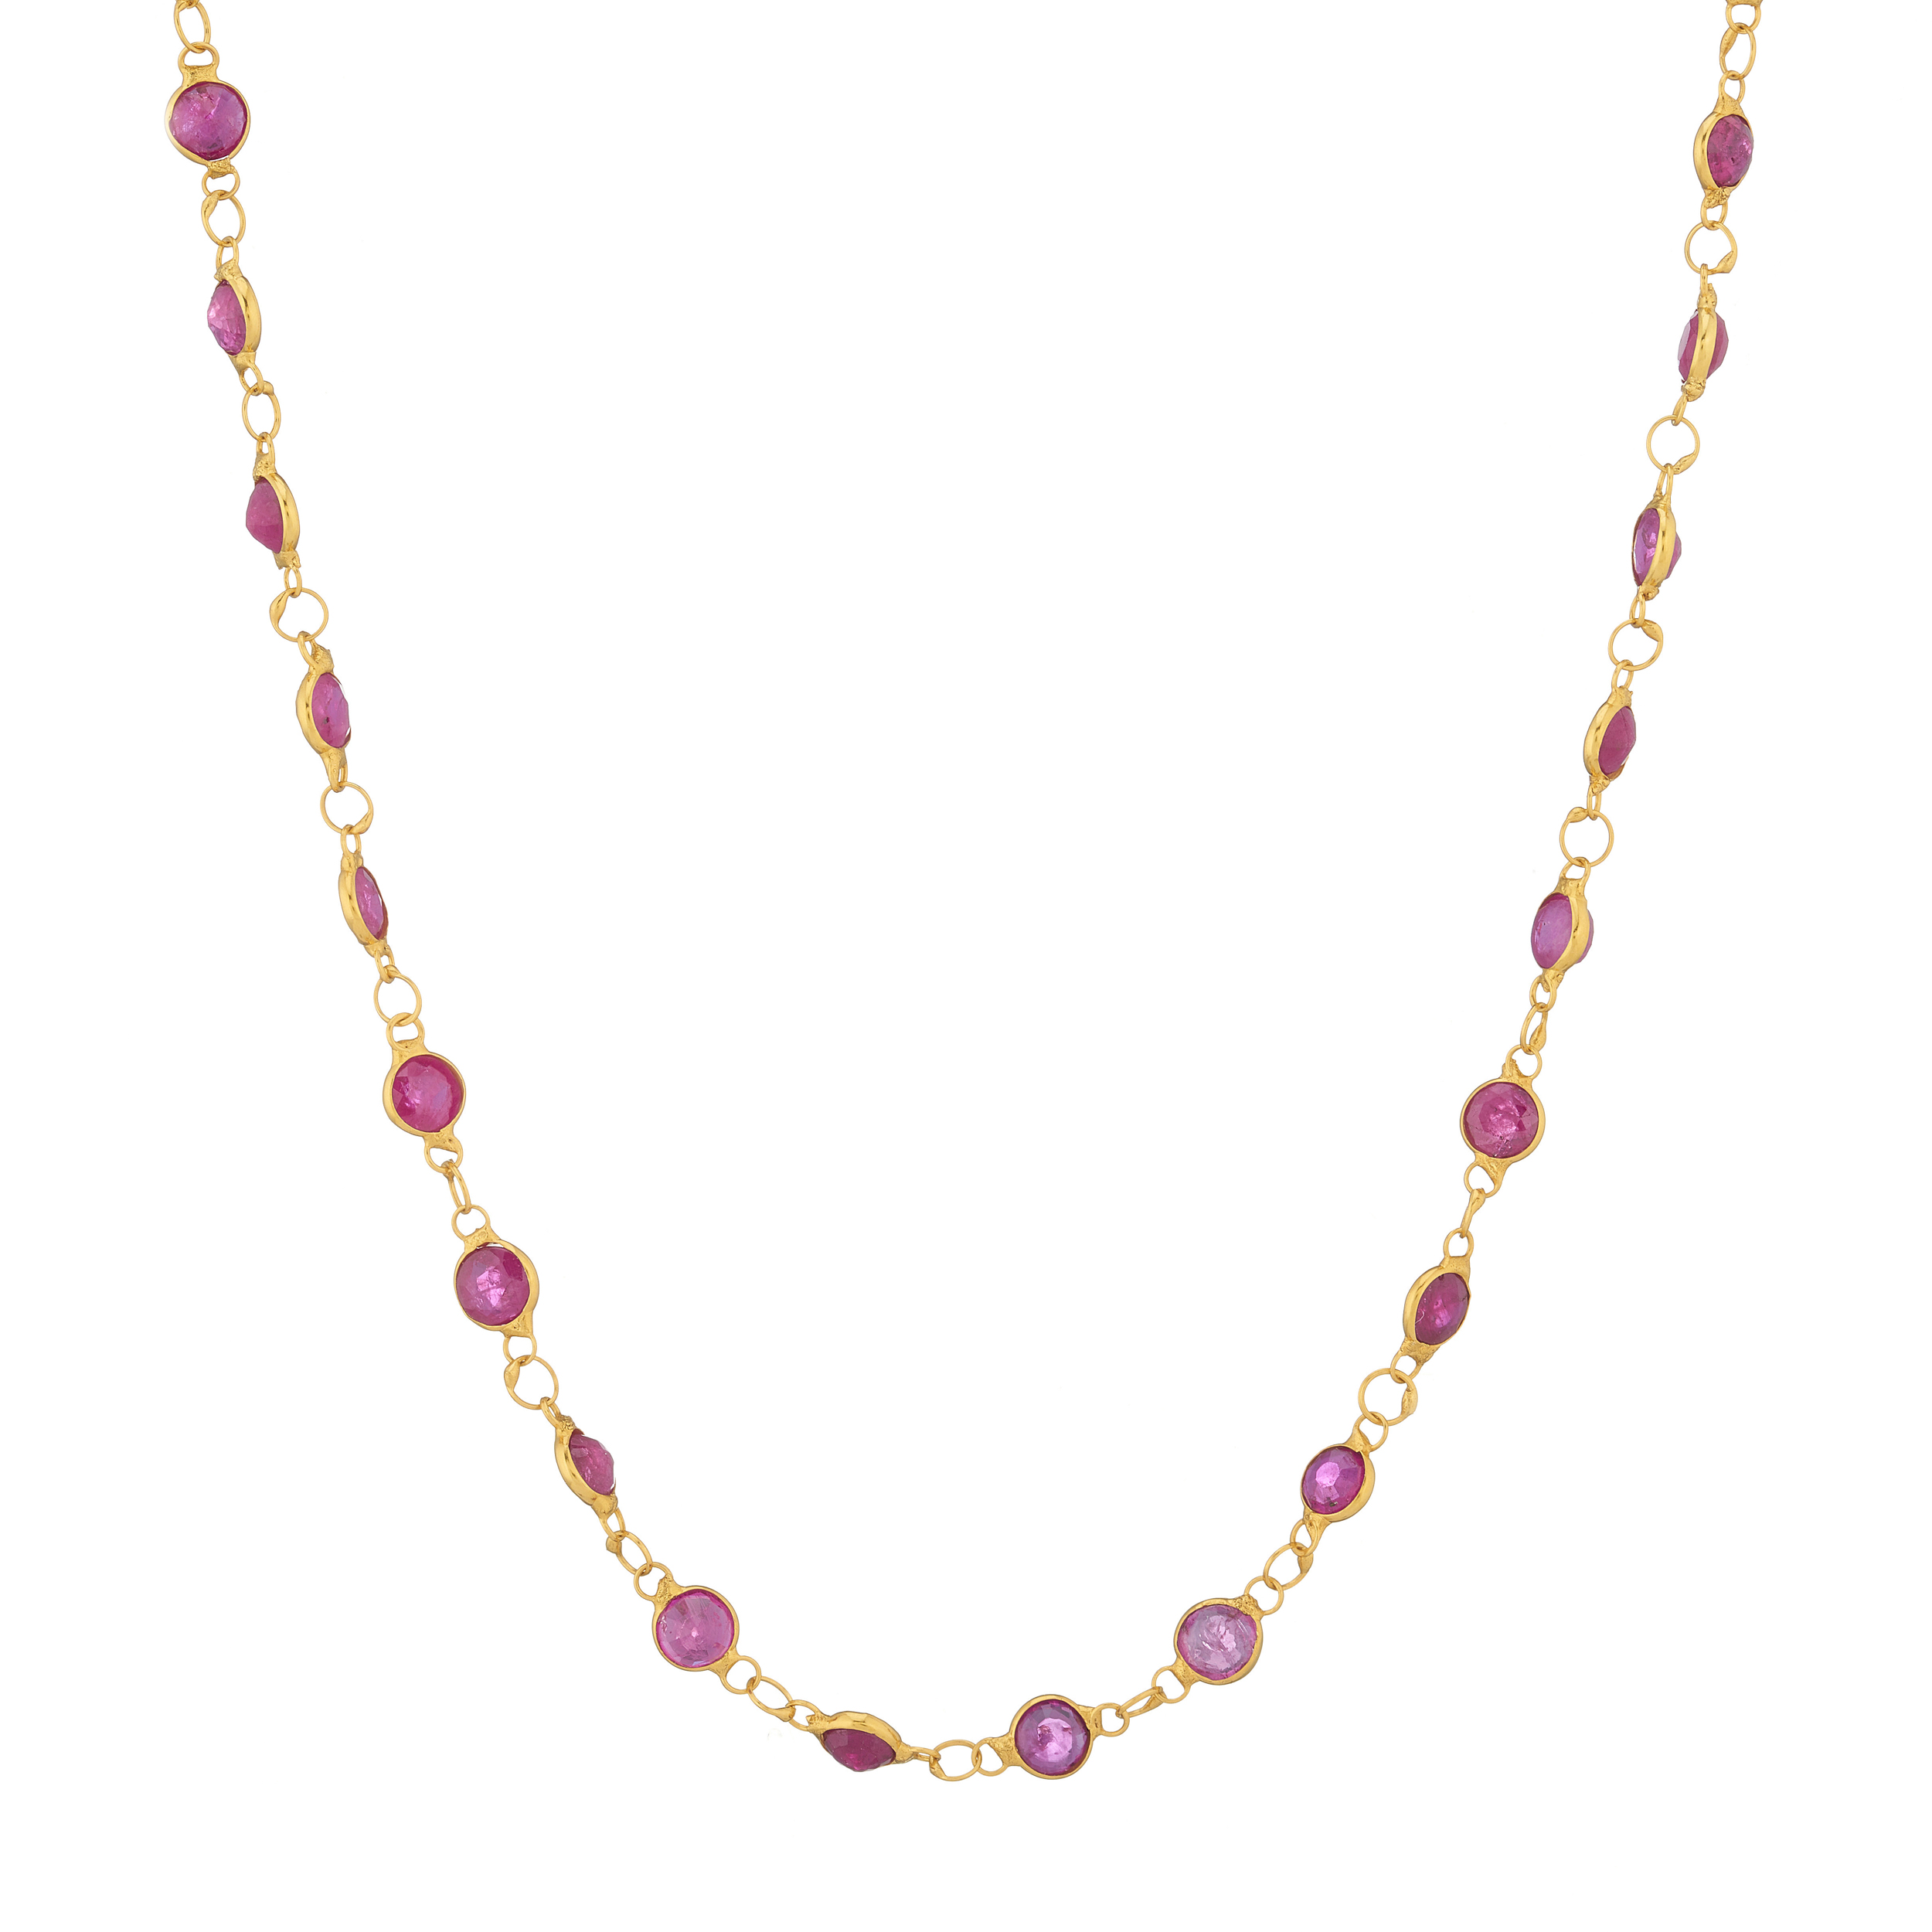 A 14ct gold ruby line necklace